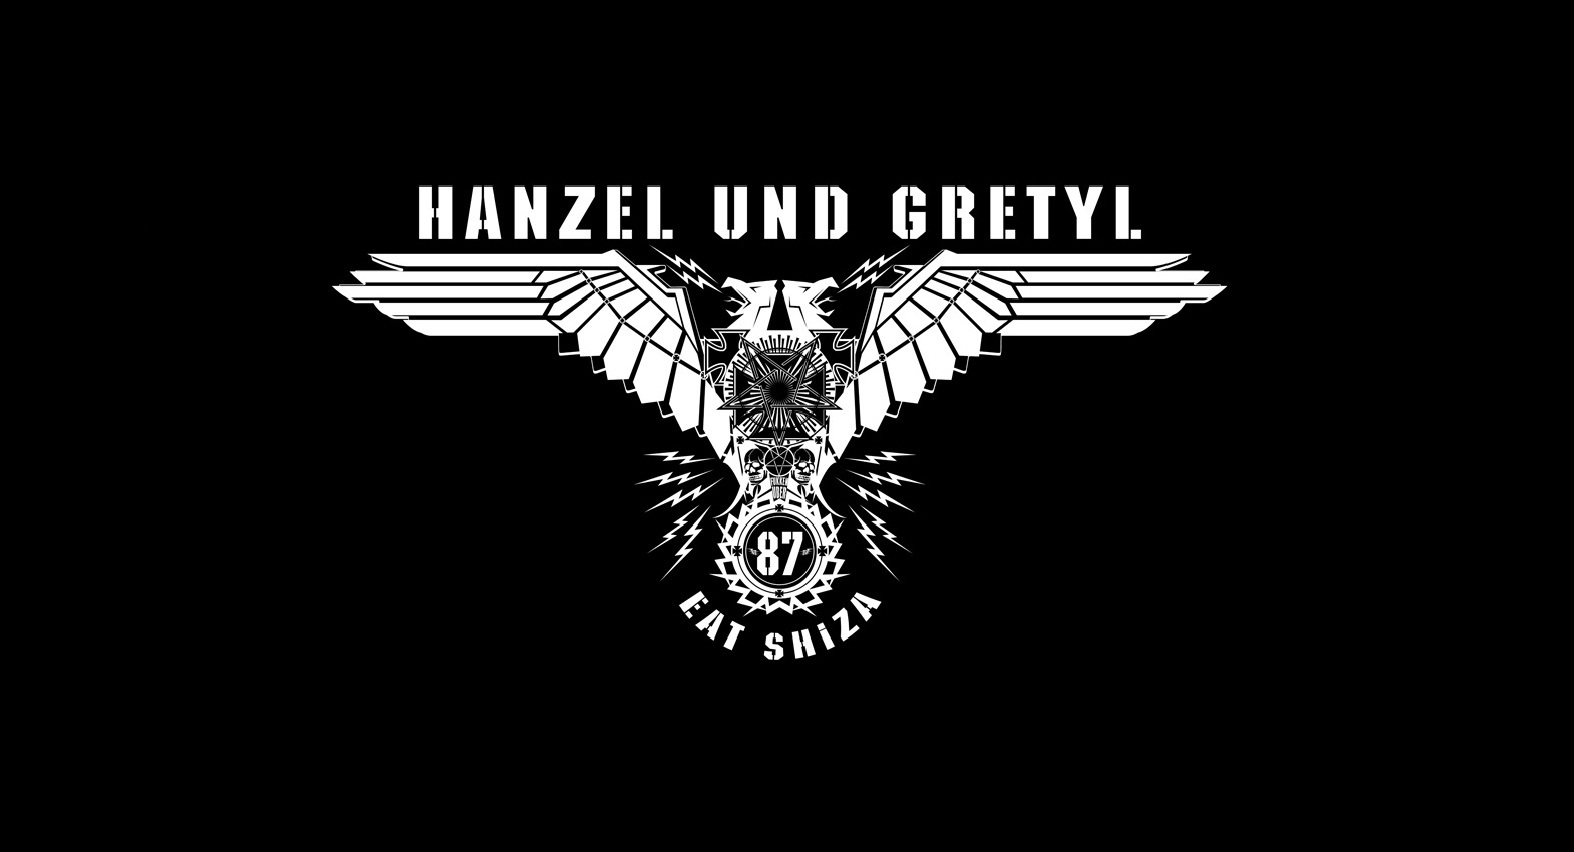 Hd Background Wallpaper 800x600: 2 Hanzel Und Gretyl HD Wallpapers